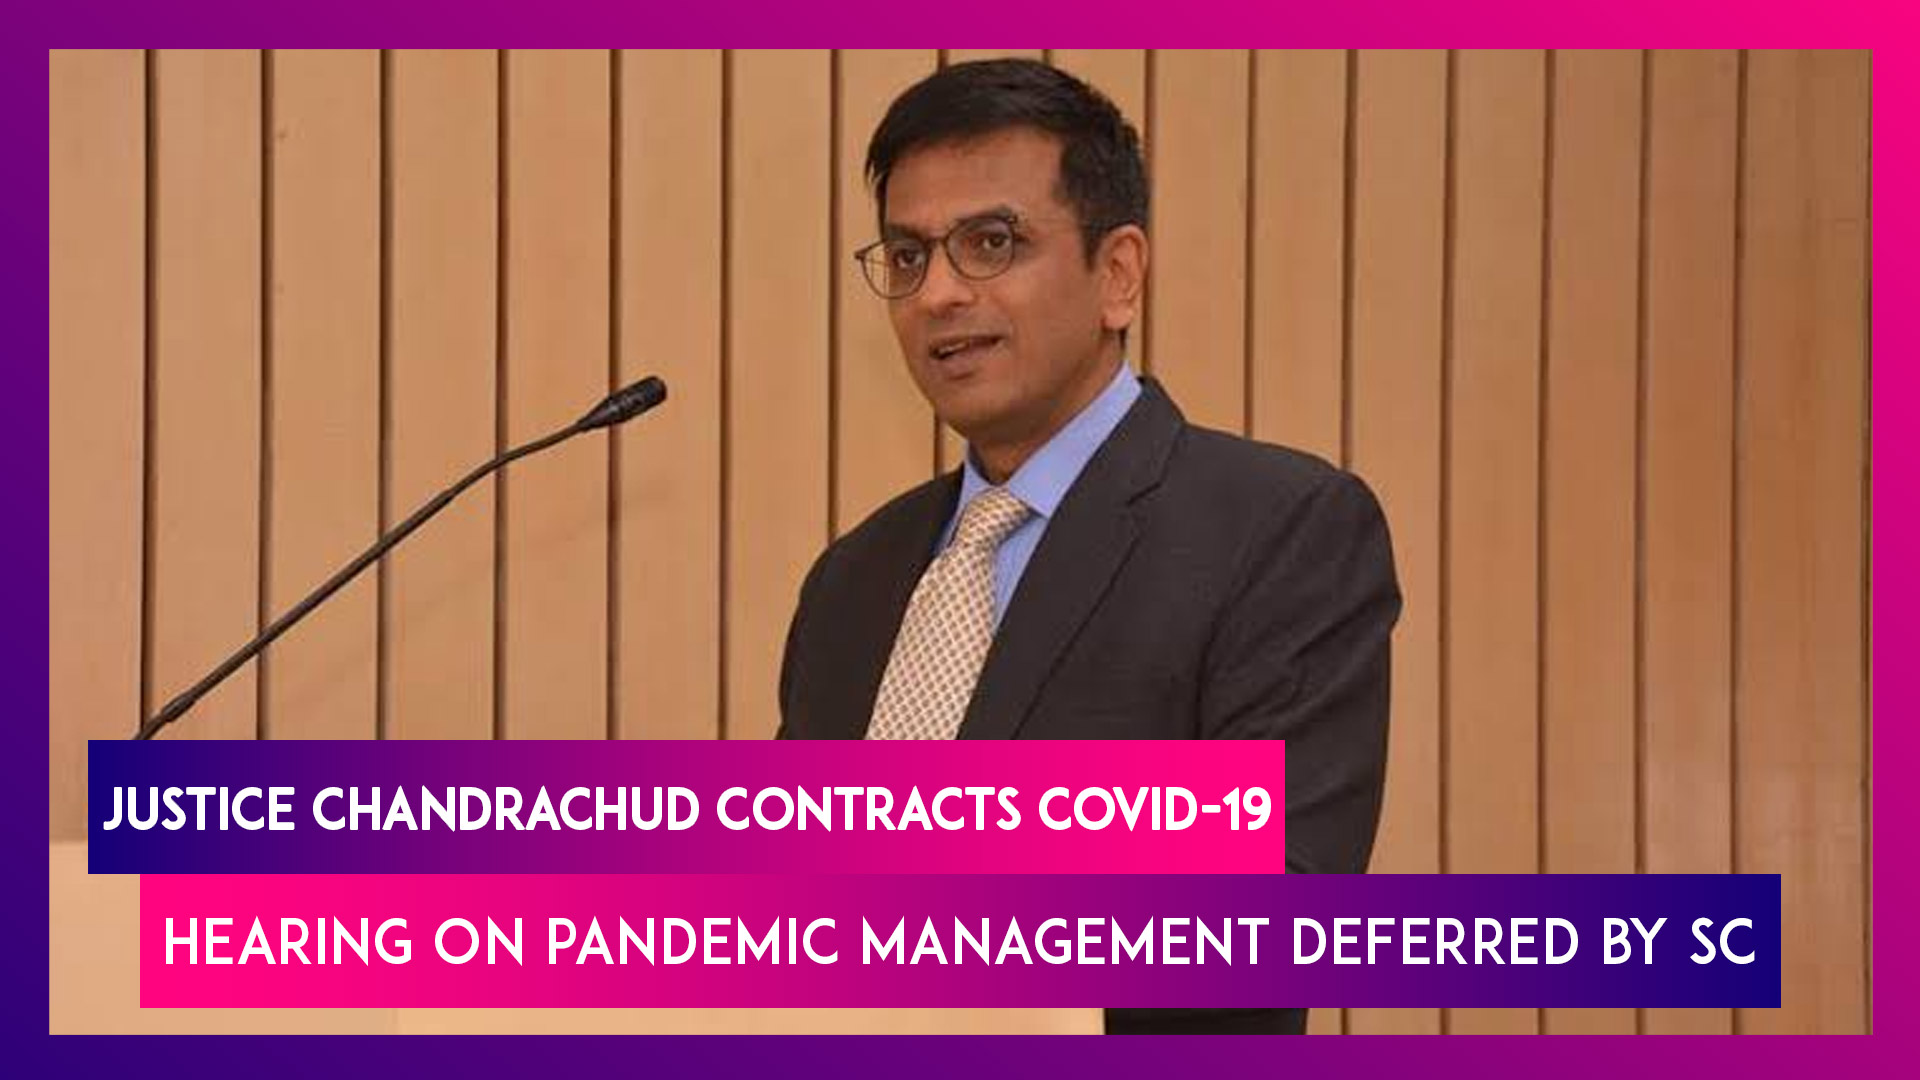 Justice Chandrachud Tests Positive For Covid-19, Hearing On Pandemic Management Deferred By Supreme Court